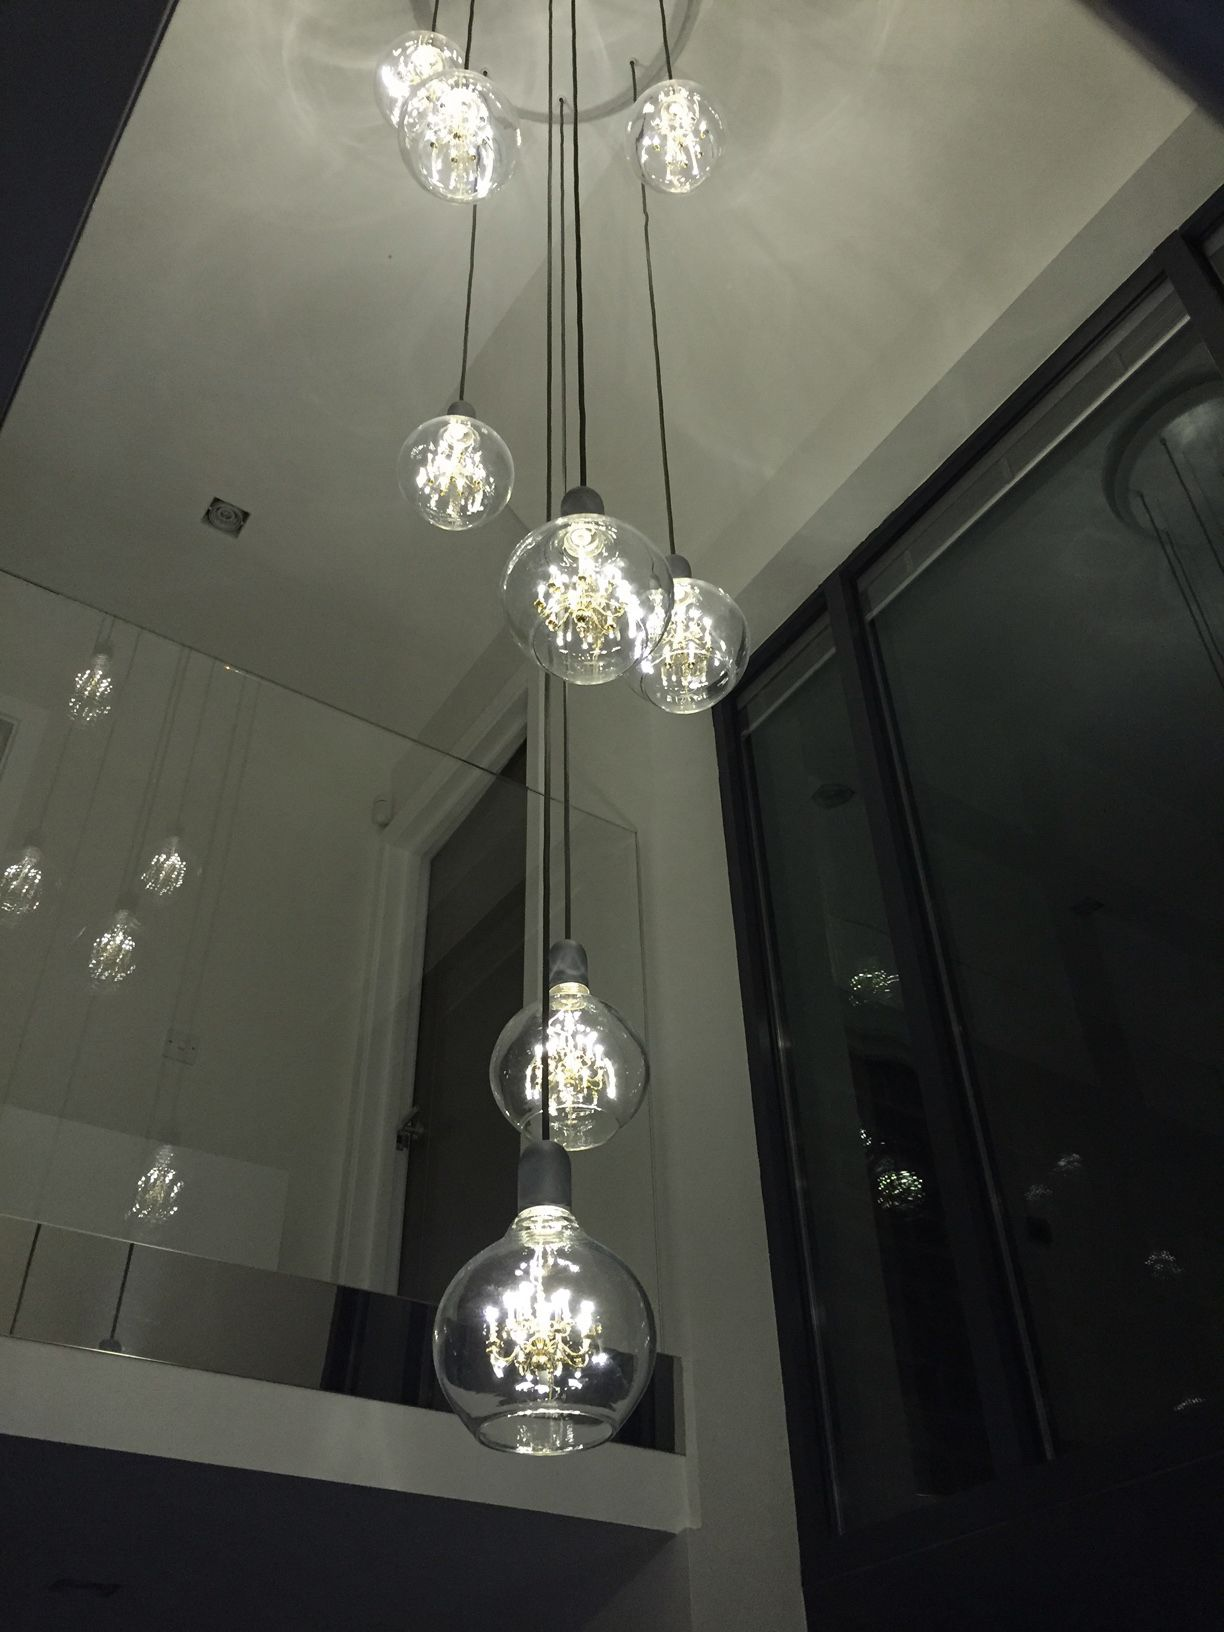 Cluster of 8 king edisons project for zing leisure httpwww mini chandelier inside glass bulb makes for one unusual pendant lamp arubaitofo Images